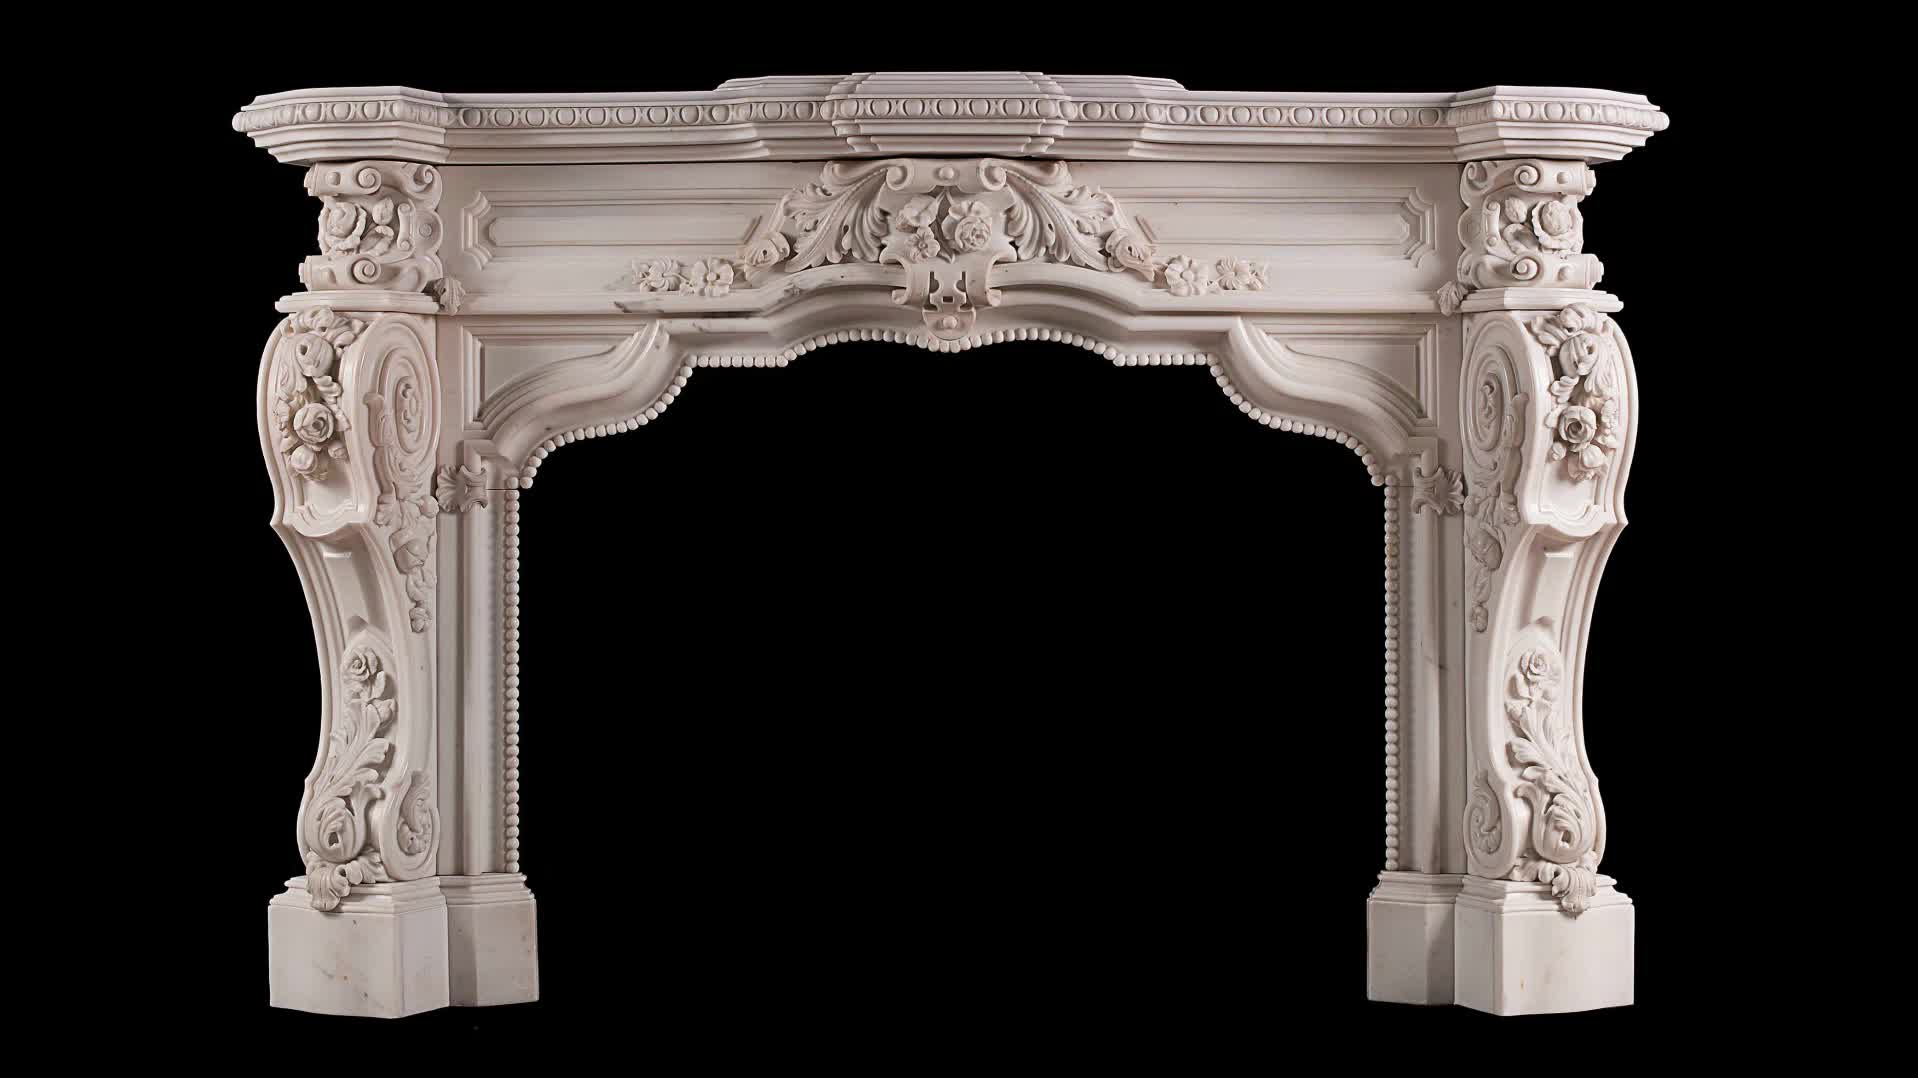 Chinese white marble freestanding fireplace surround mantel